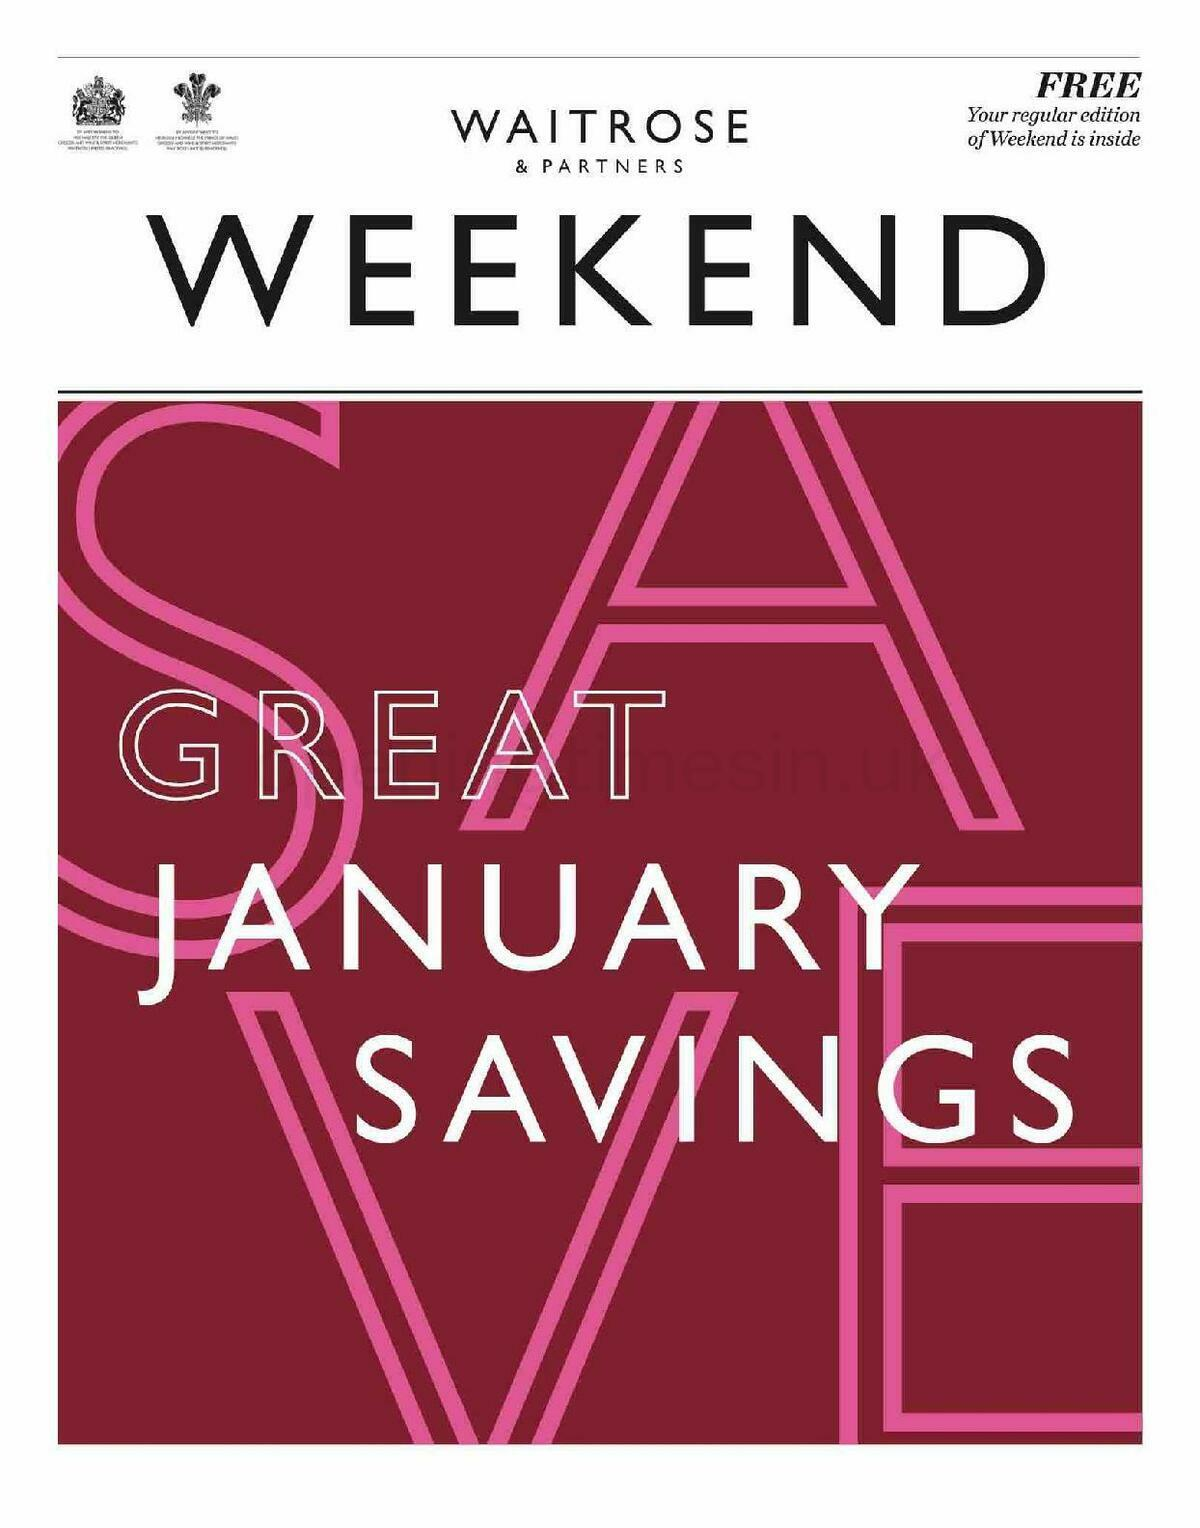 Waitrose Offers from January 7